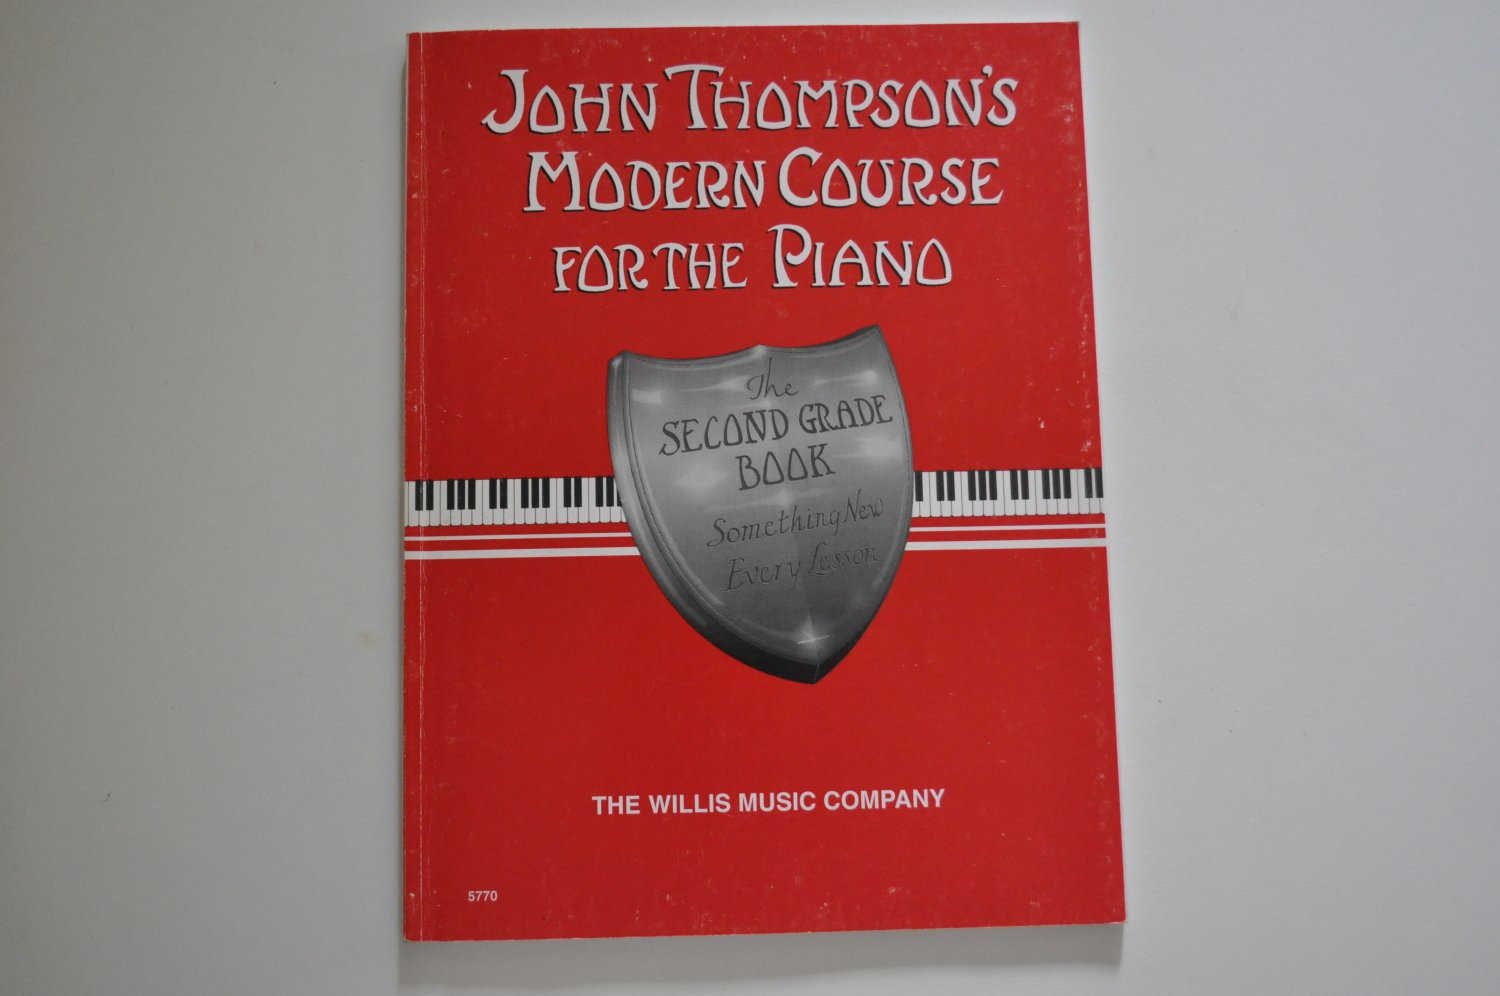 John Thompson's Modern Course For the Piano - the 2nd grade book